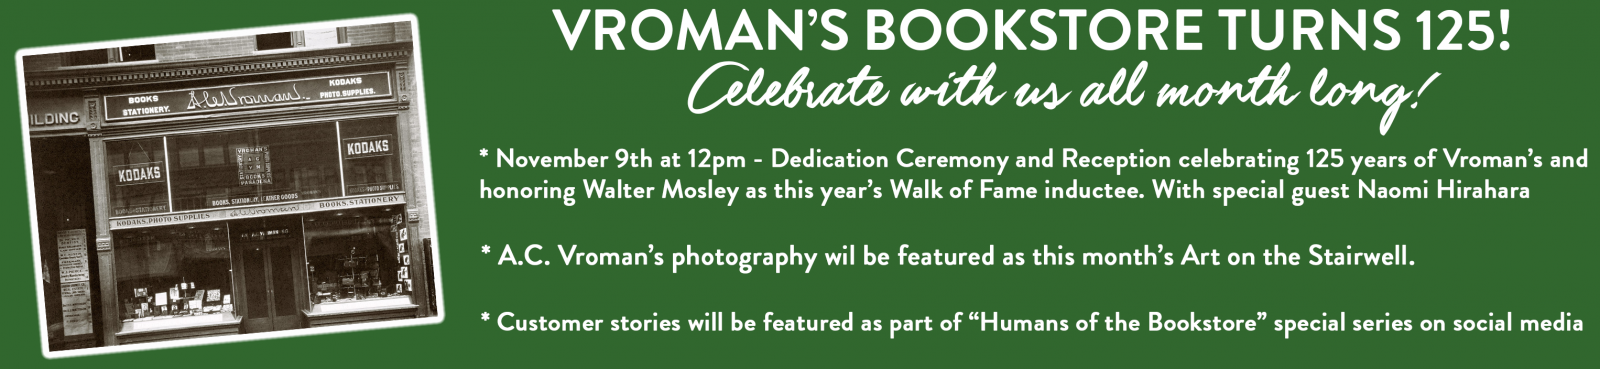 Vroman's Celebrates 125 years with special anniversary events